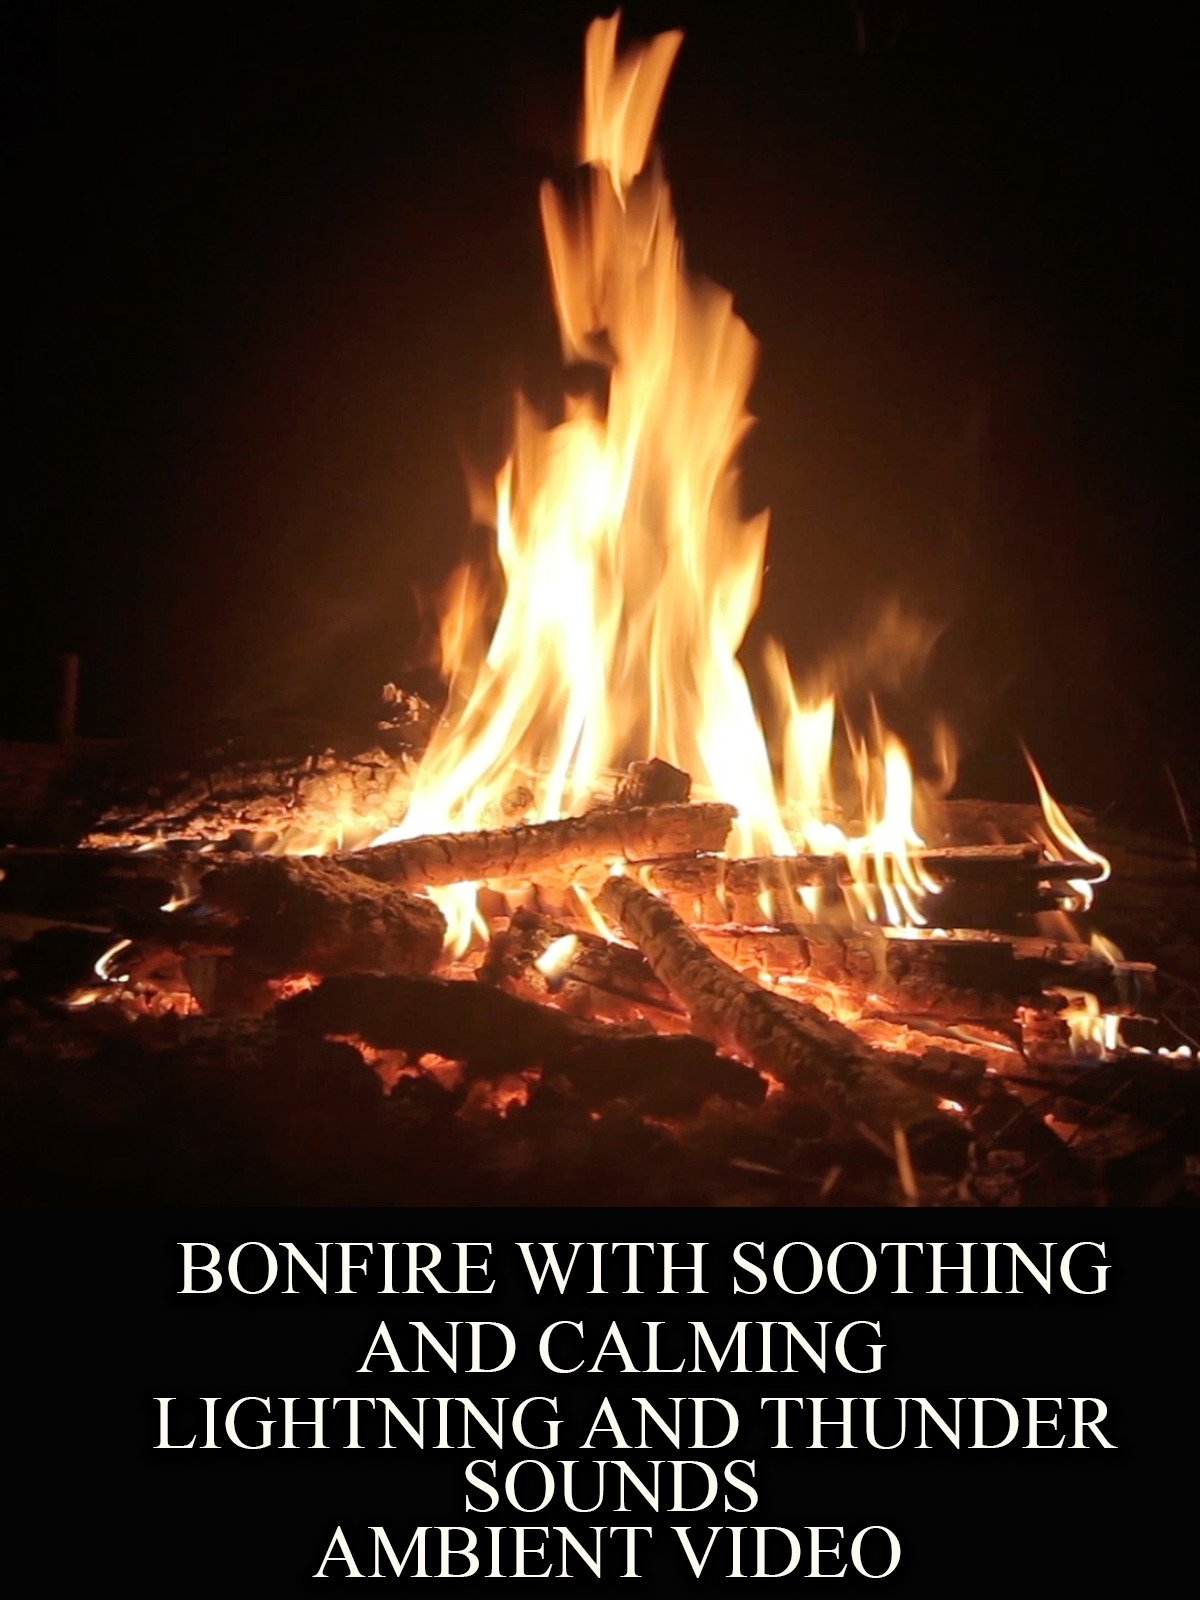 Bonfire with soothing and calming lightning and thunder sounds ambient video